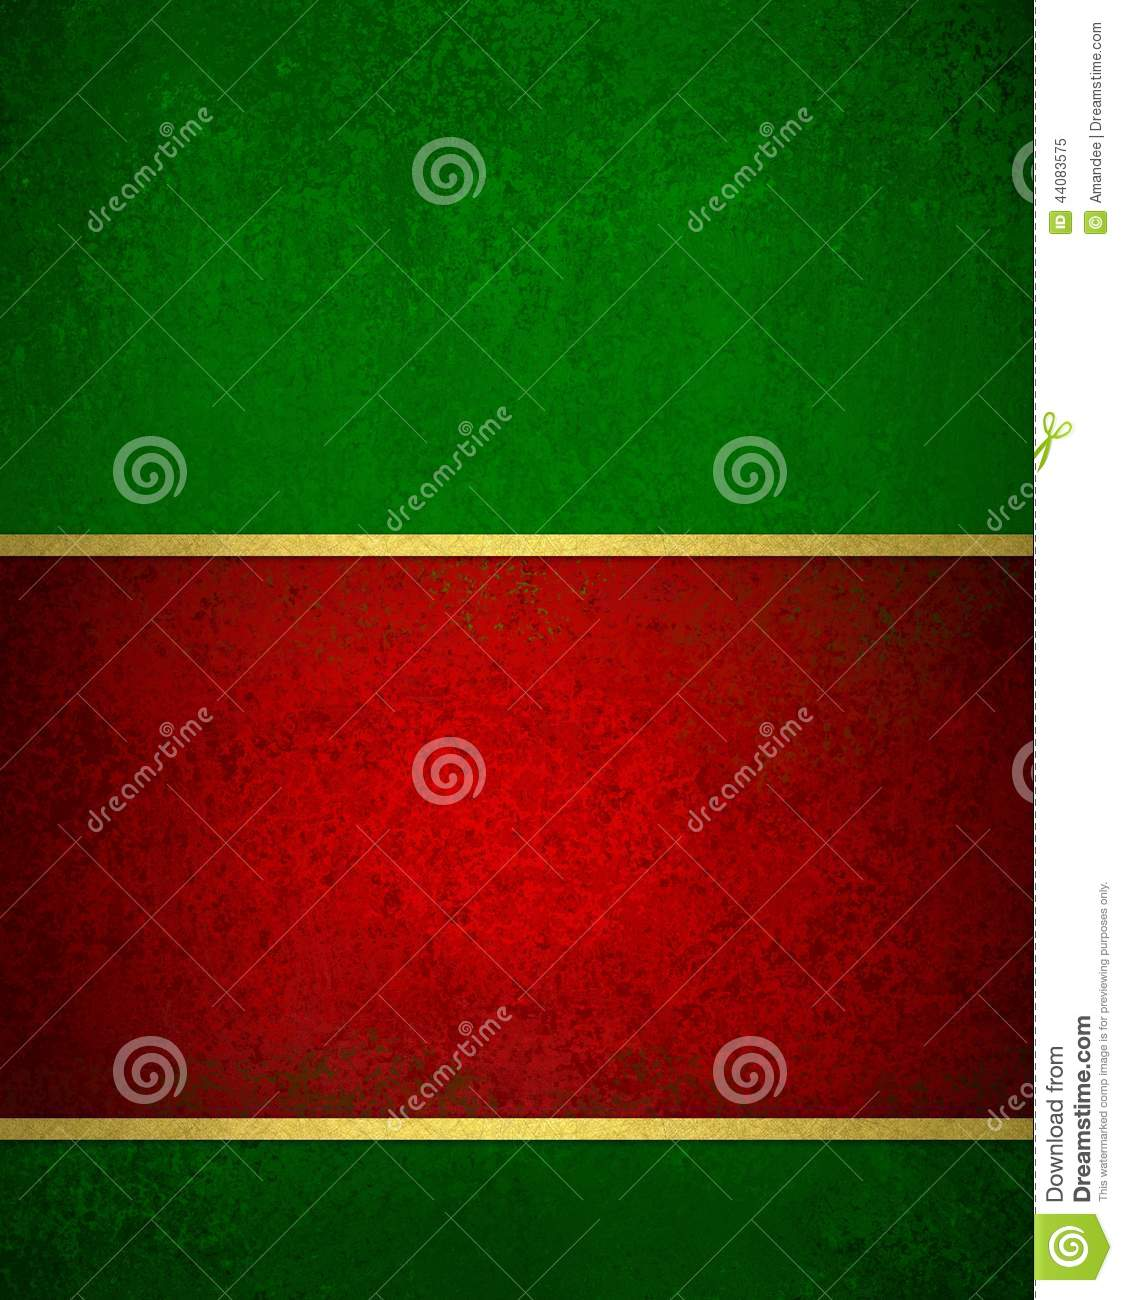 Green red Christmas background with vintage texture and gold trim accent Christmas ribbon